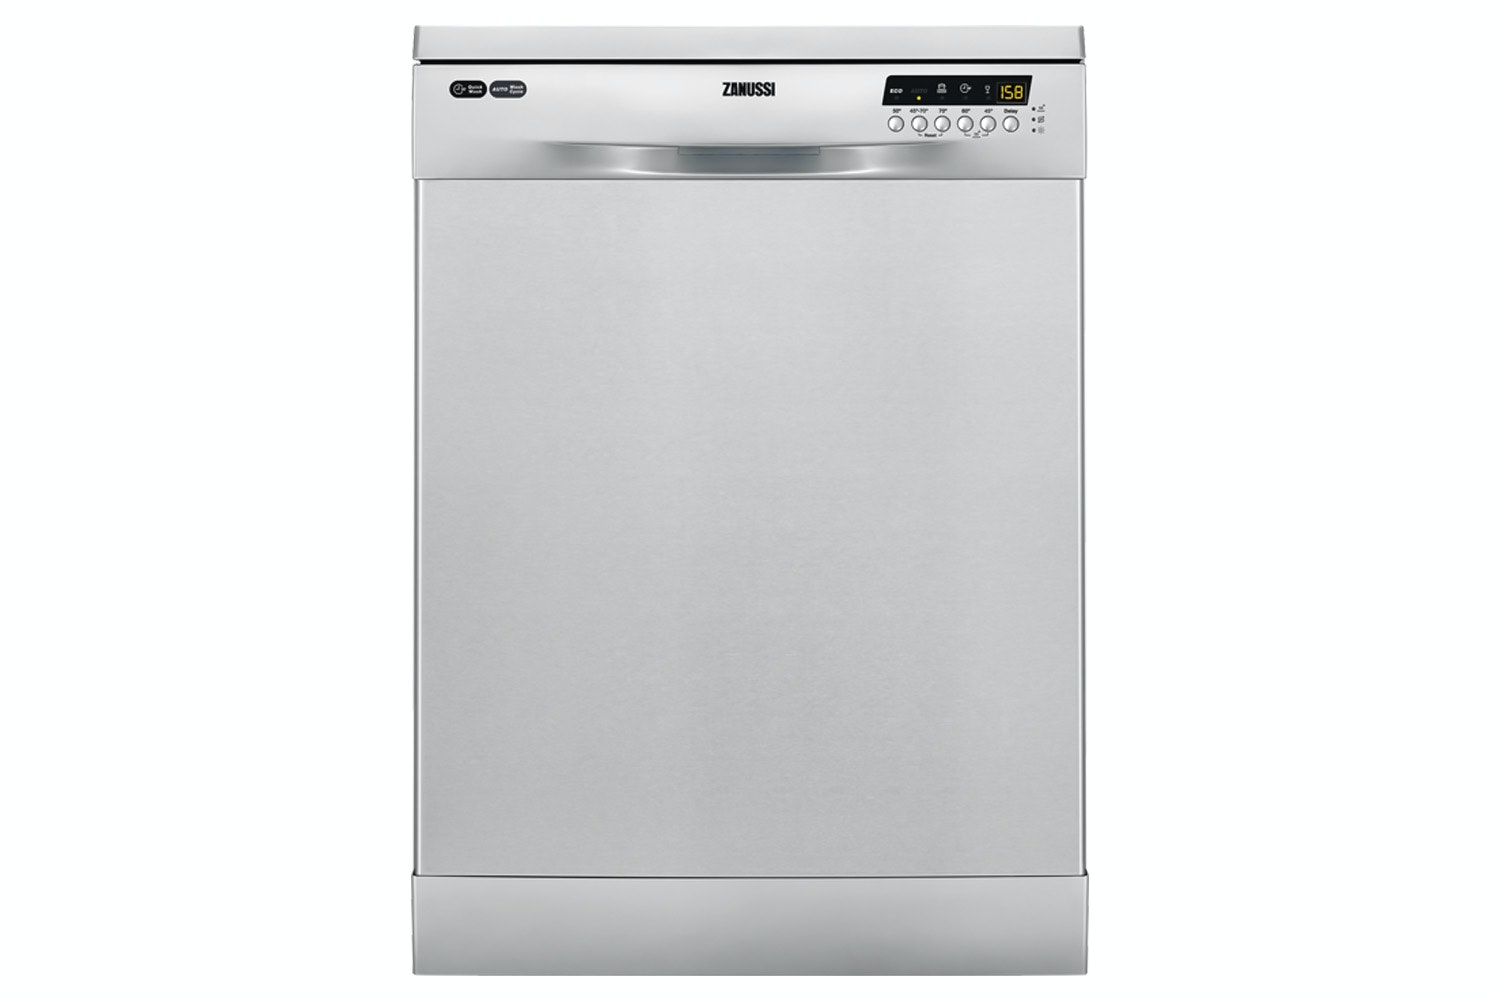 Zanussi Freestanding Dishwasher | 13 Place | ZDF26020XA | Stainless Steel